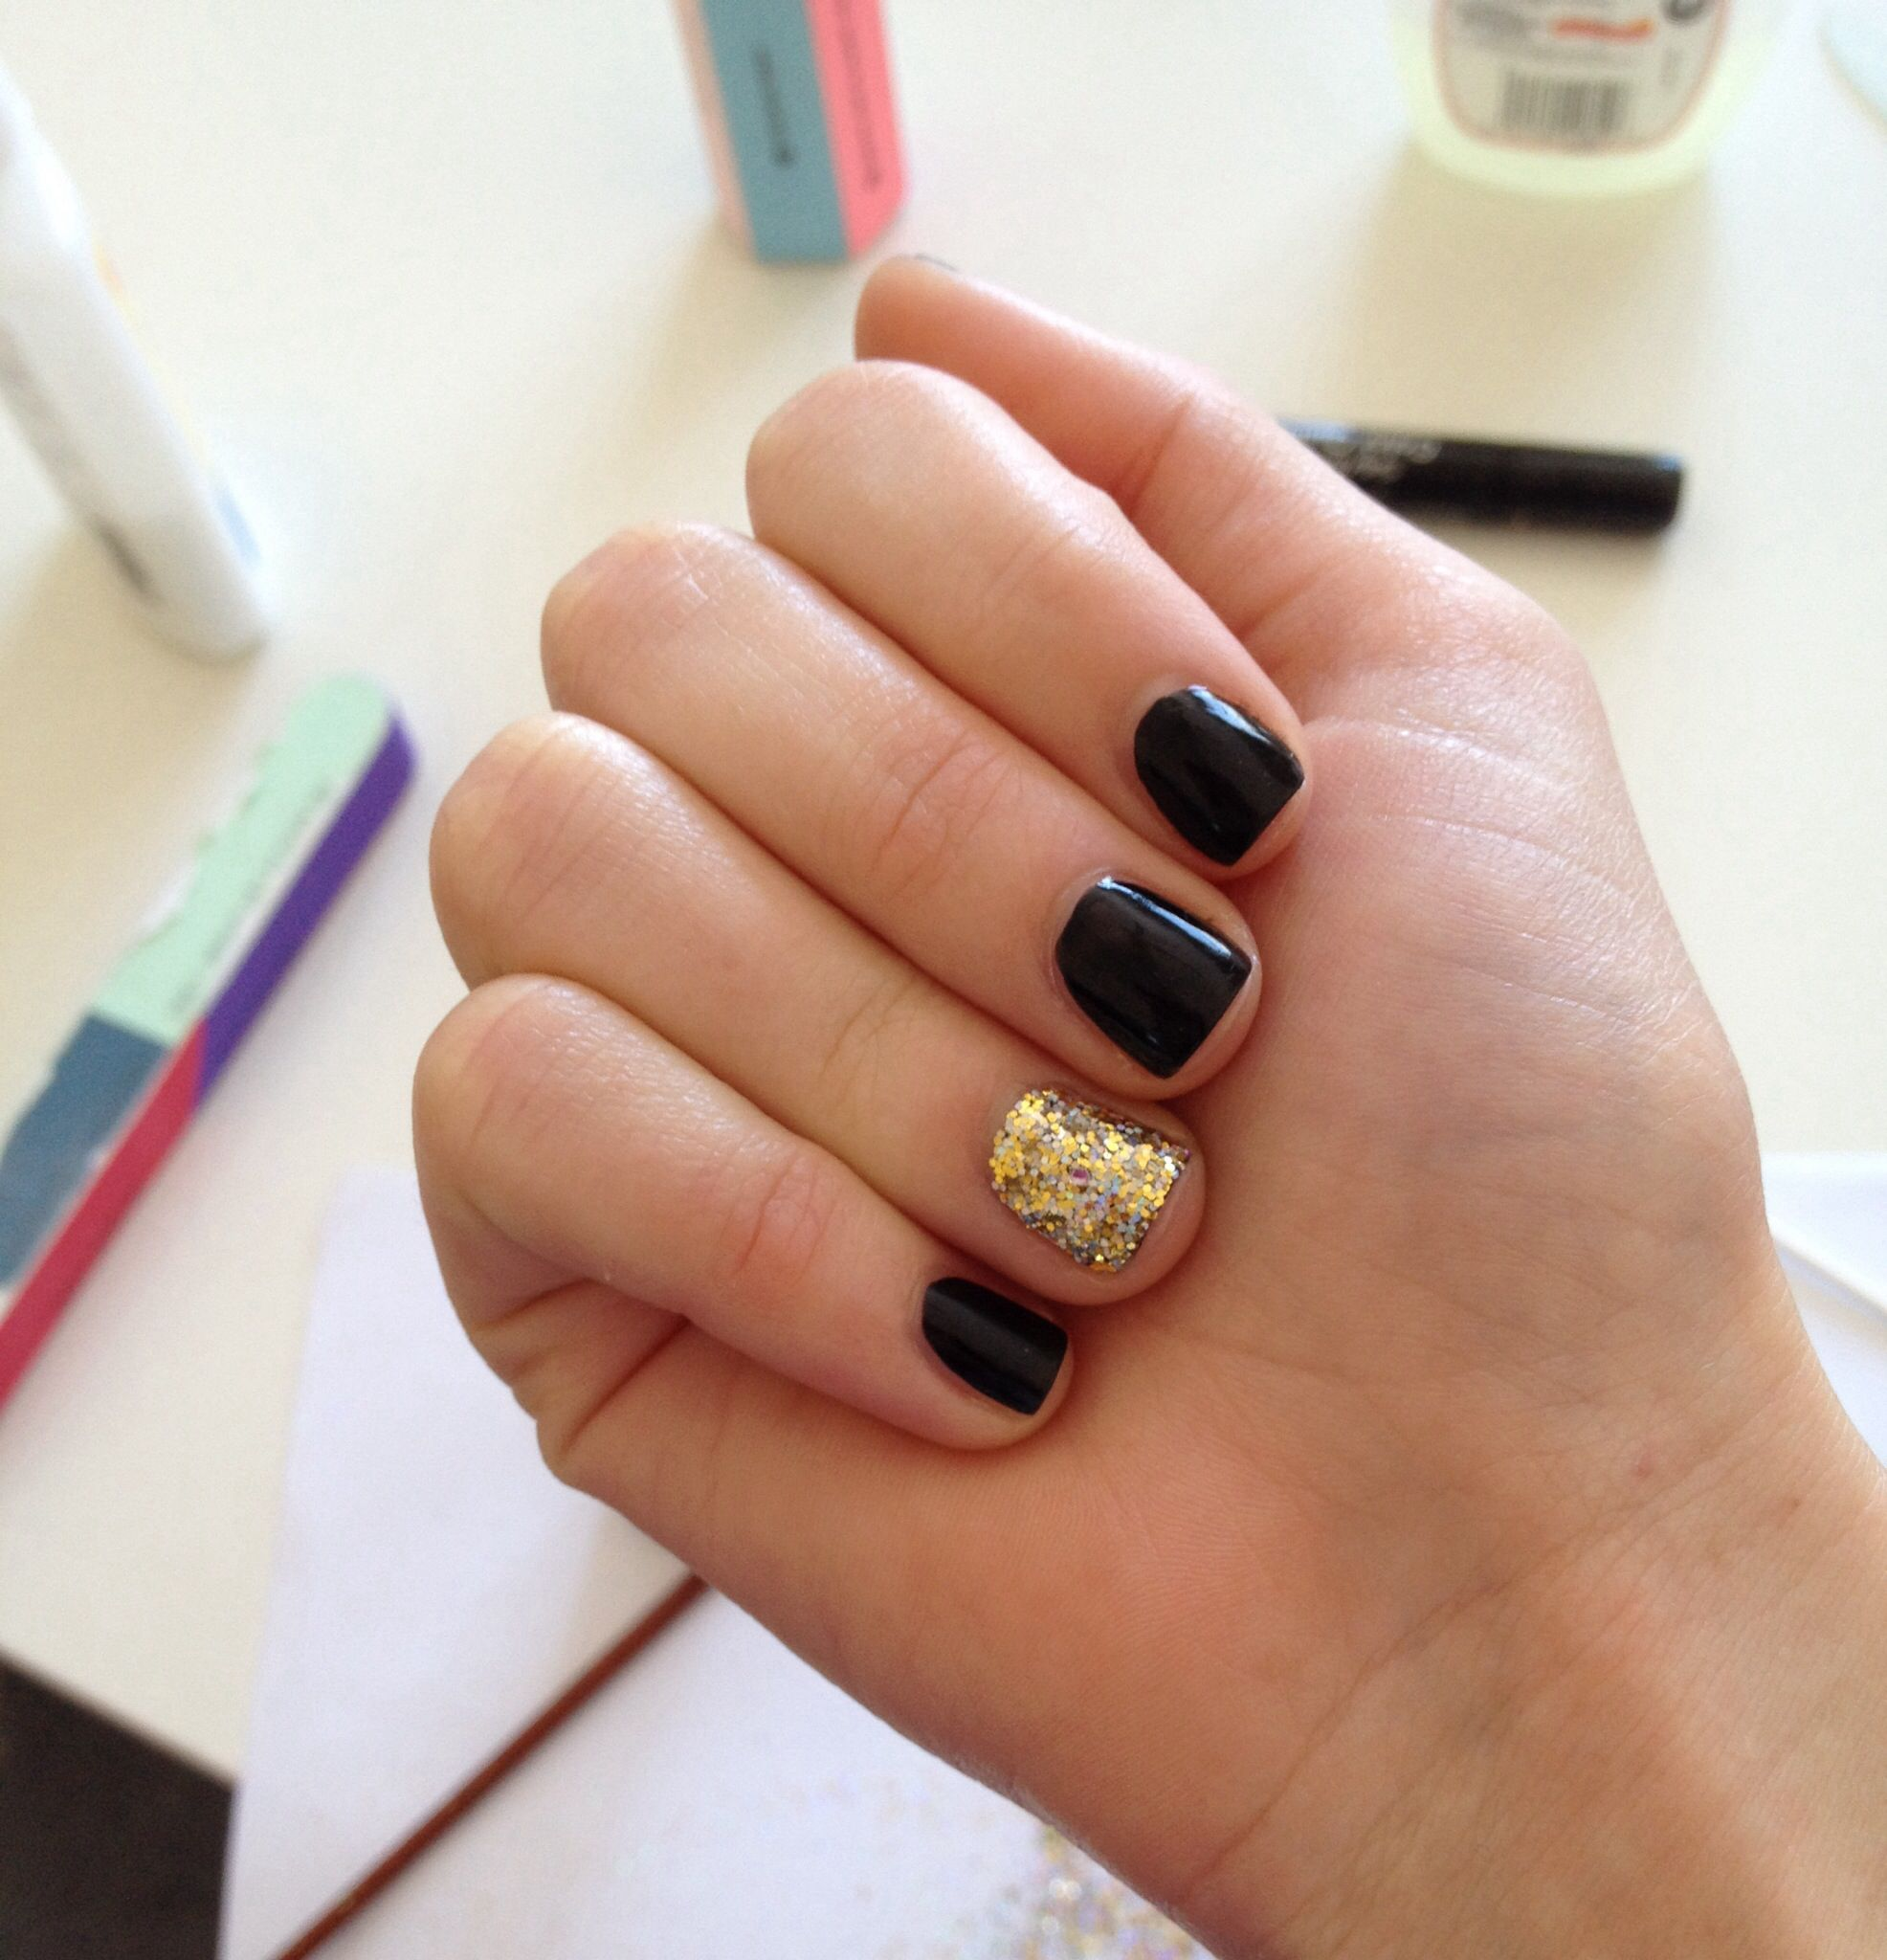 Sophisticated yet simple for short nails nails pinterest